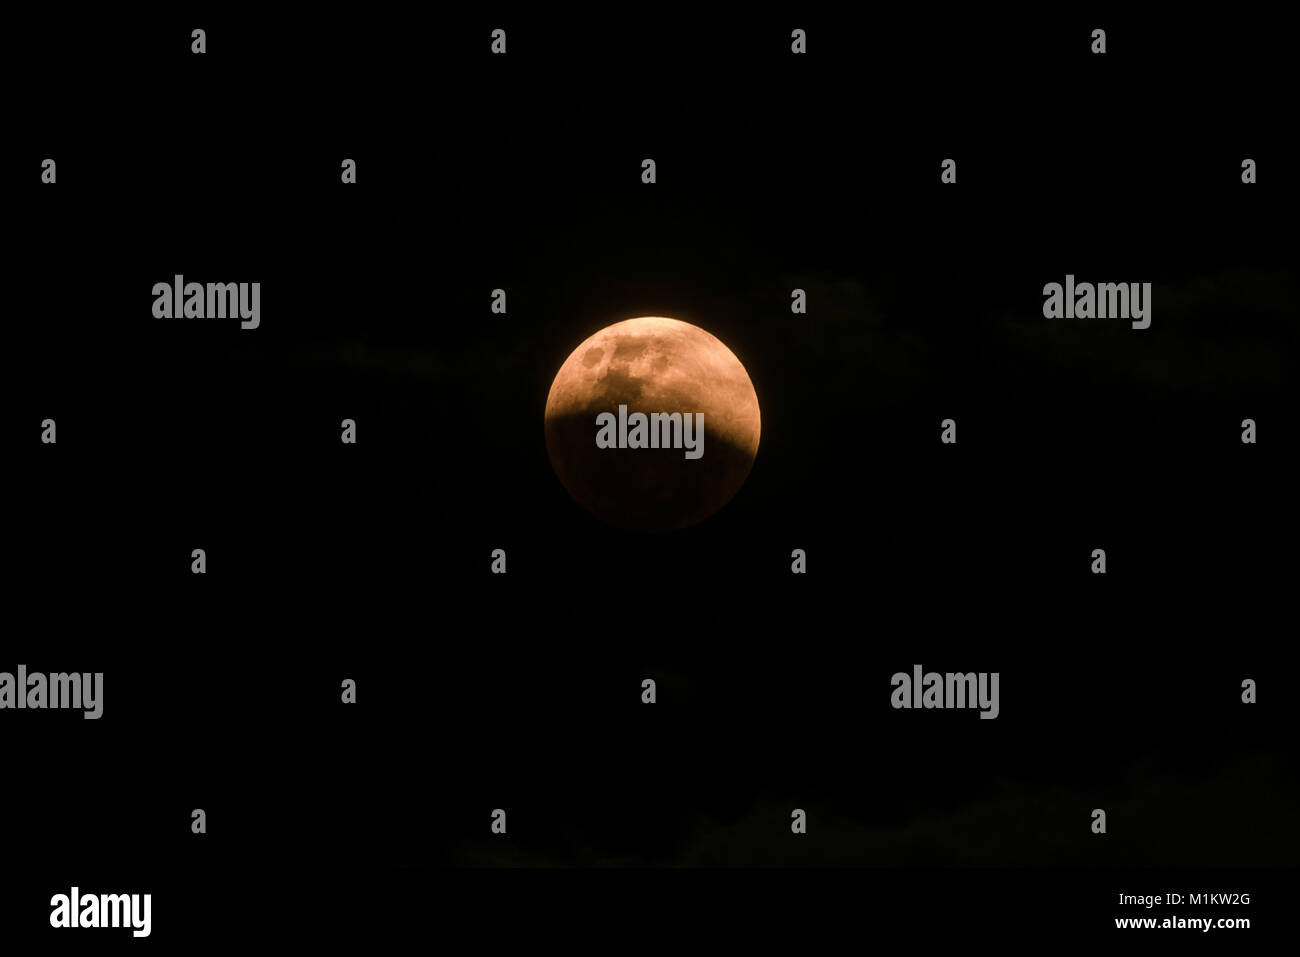 Singapore, Singapore - Jan 31, 2018: A rare view of the special `super blue blood moon` during a total lunar eclipse - Stock Image